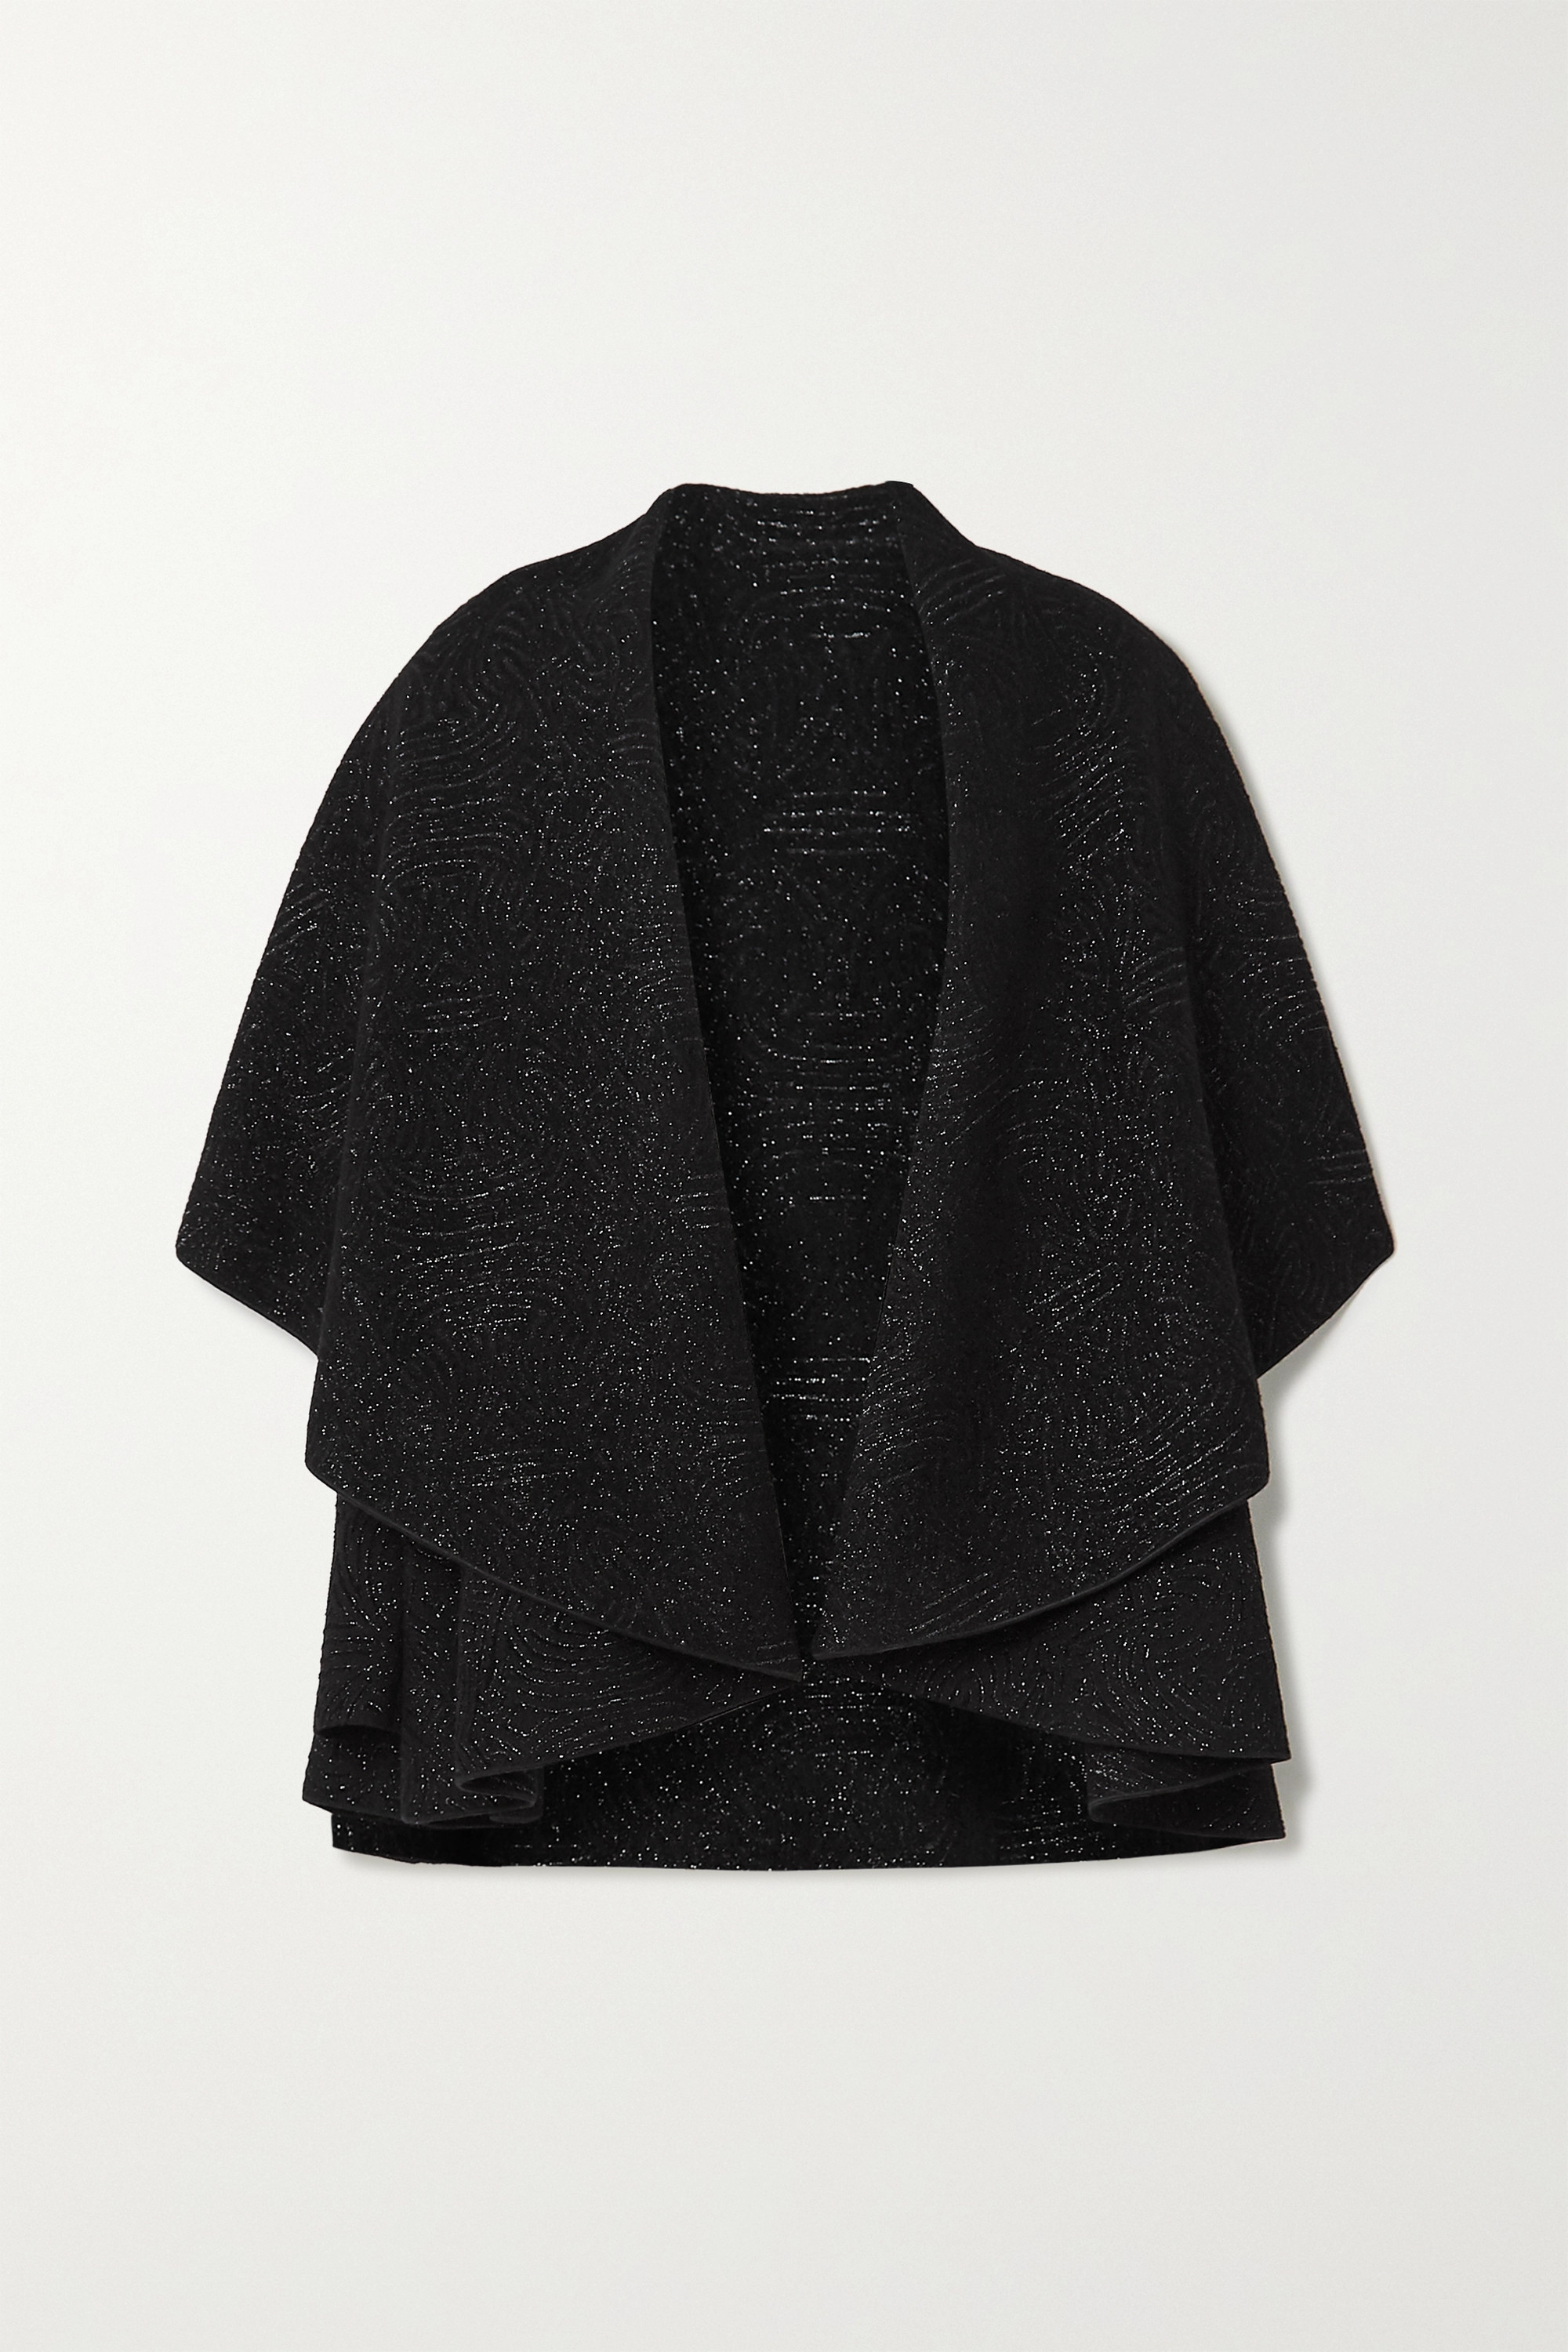 Alaïa Cape-effect metallic jacquard jacket